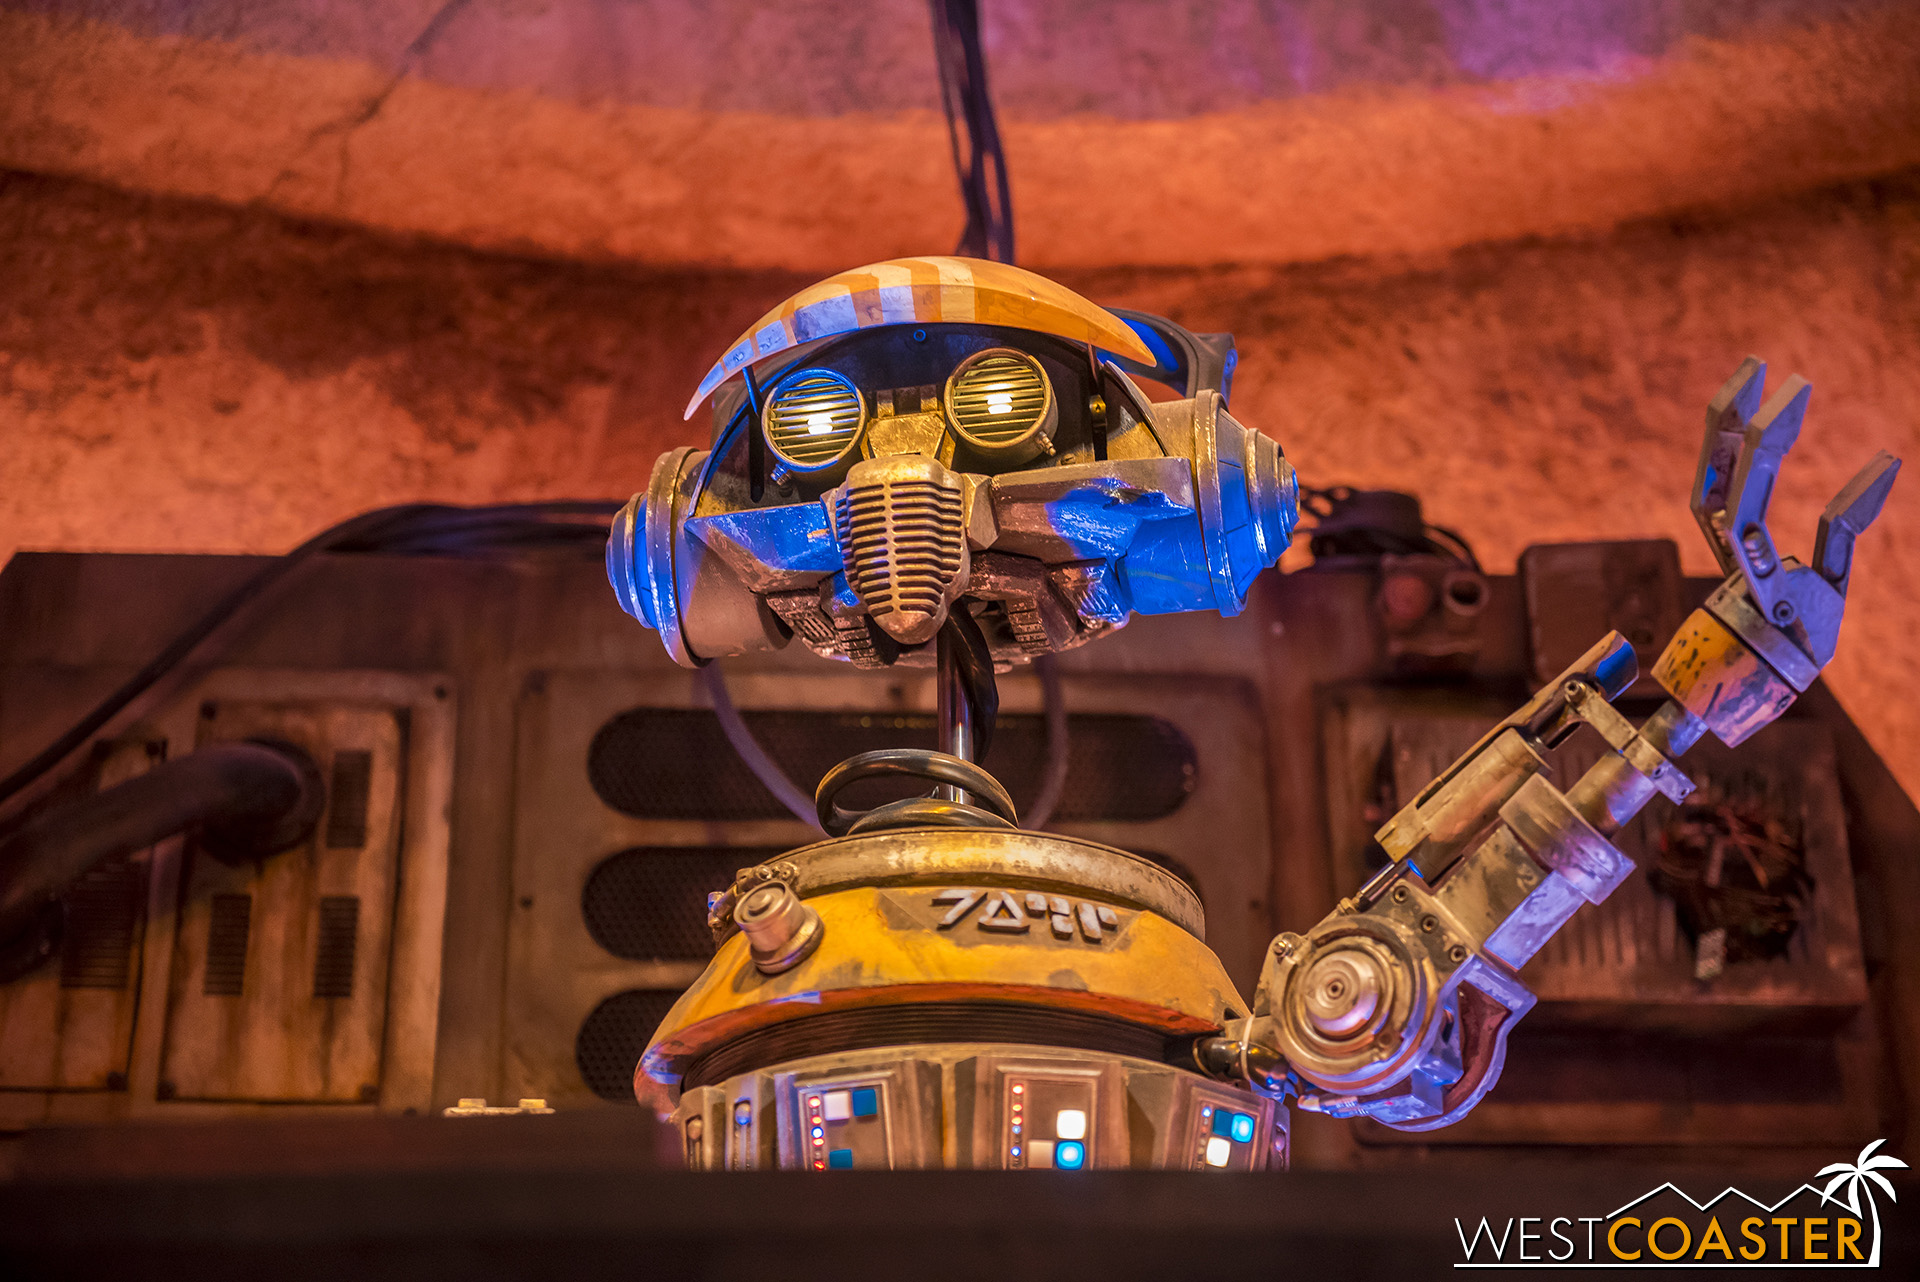 It's his first time spinning music, but he does a better job than his Star Tours run!